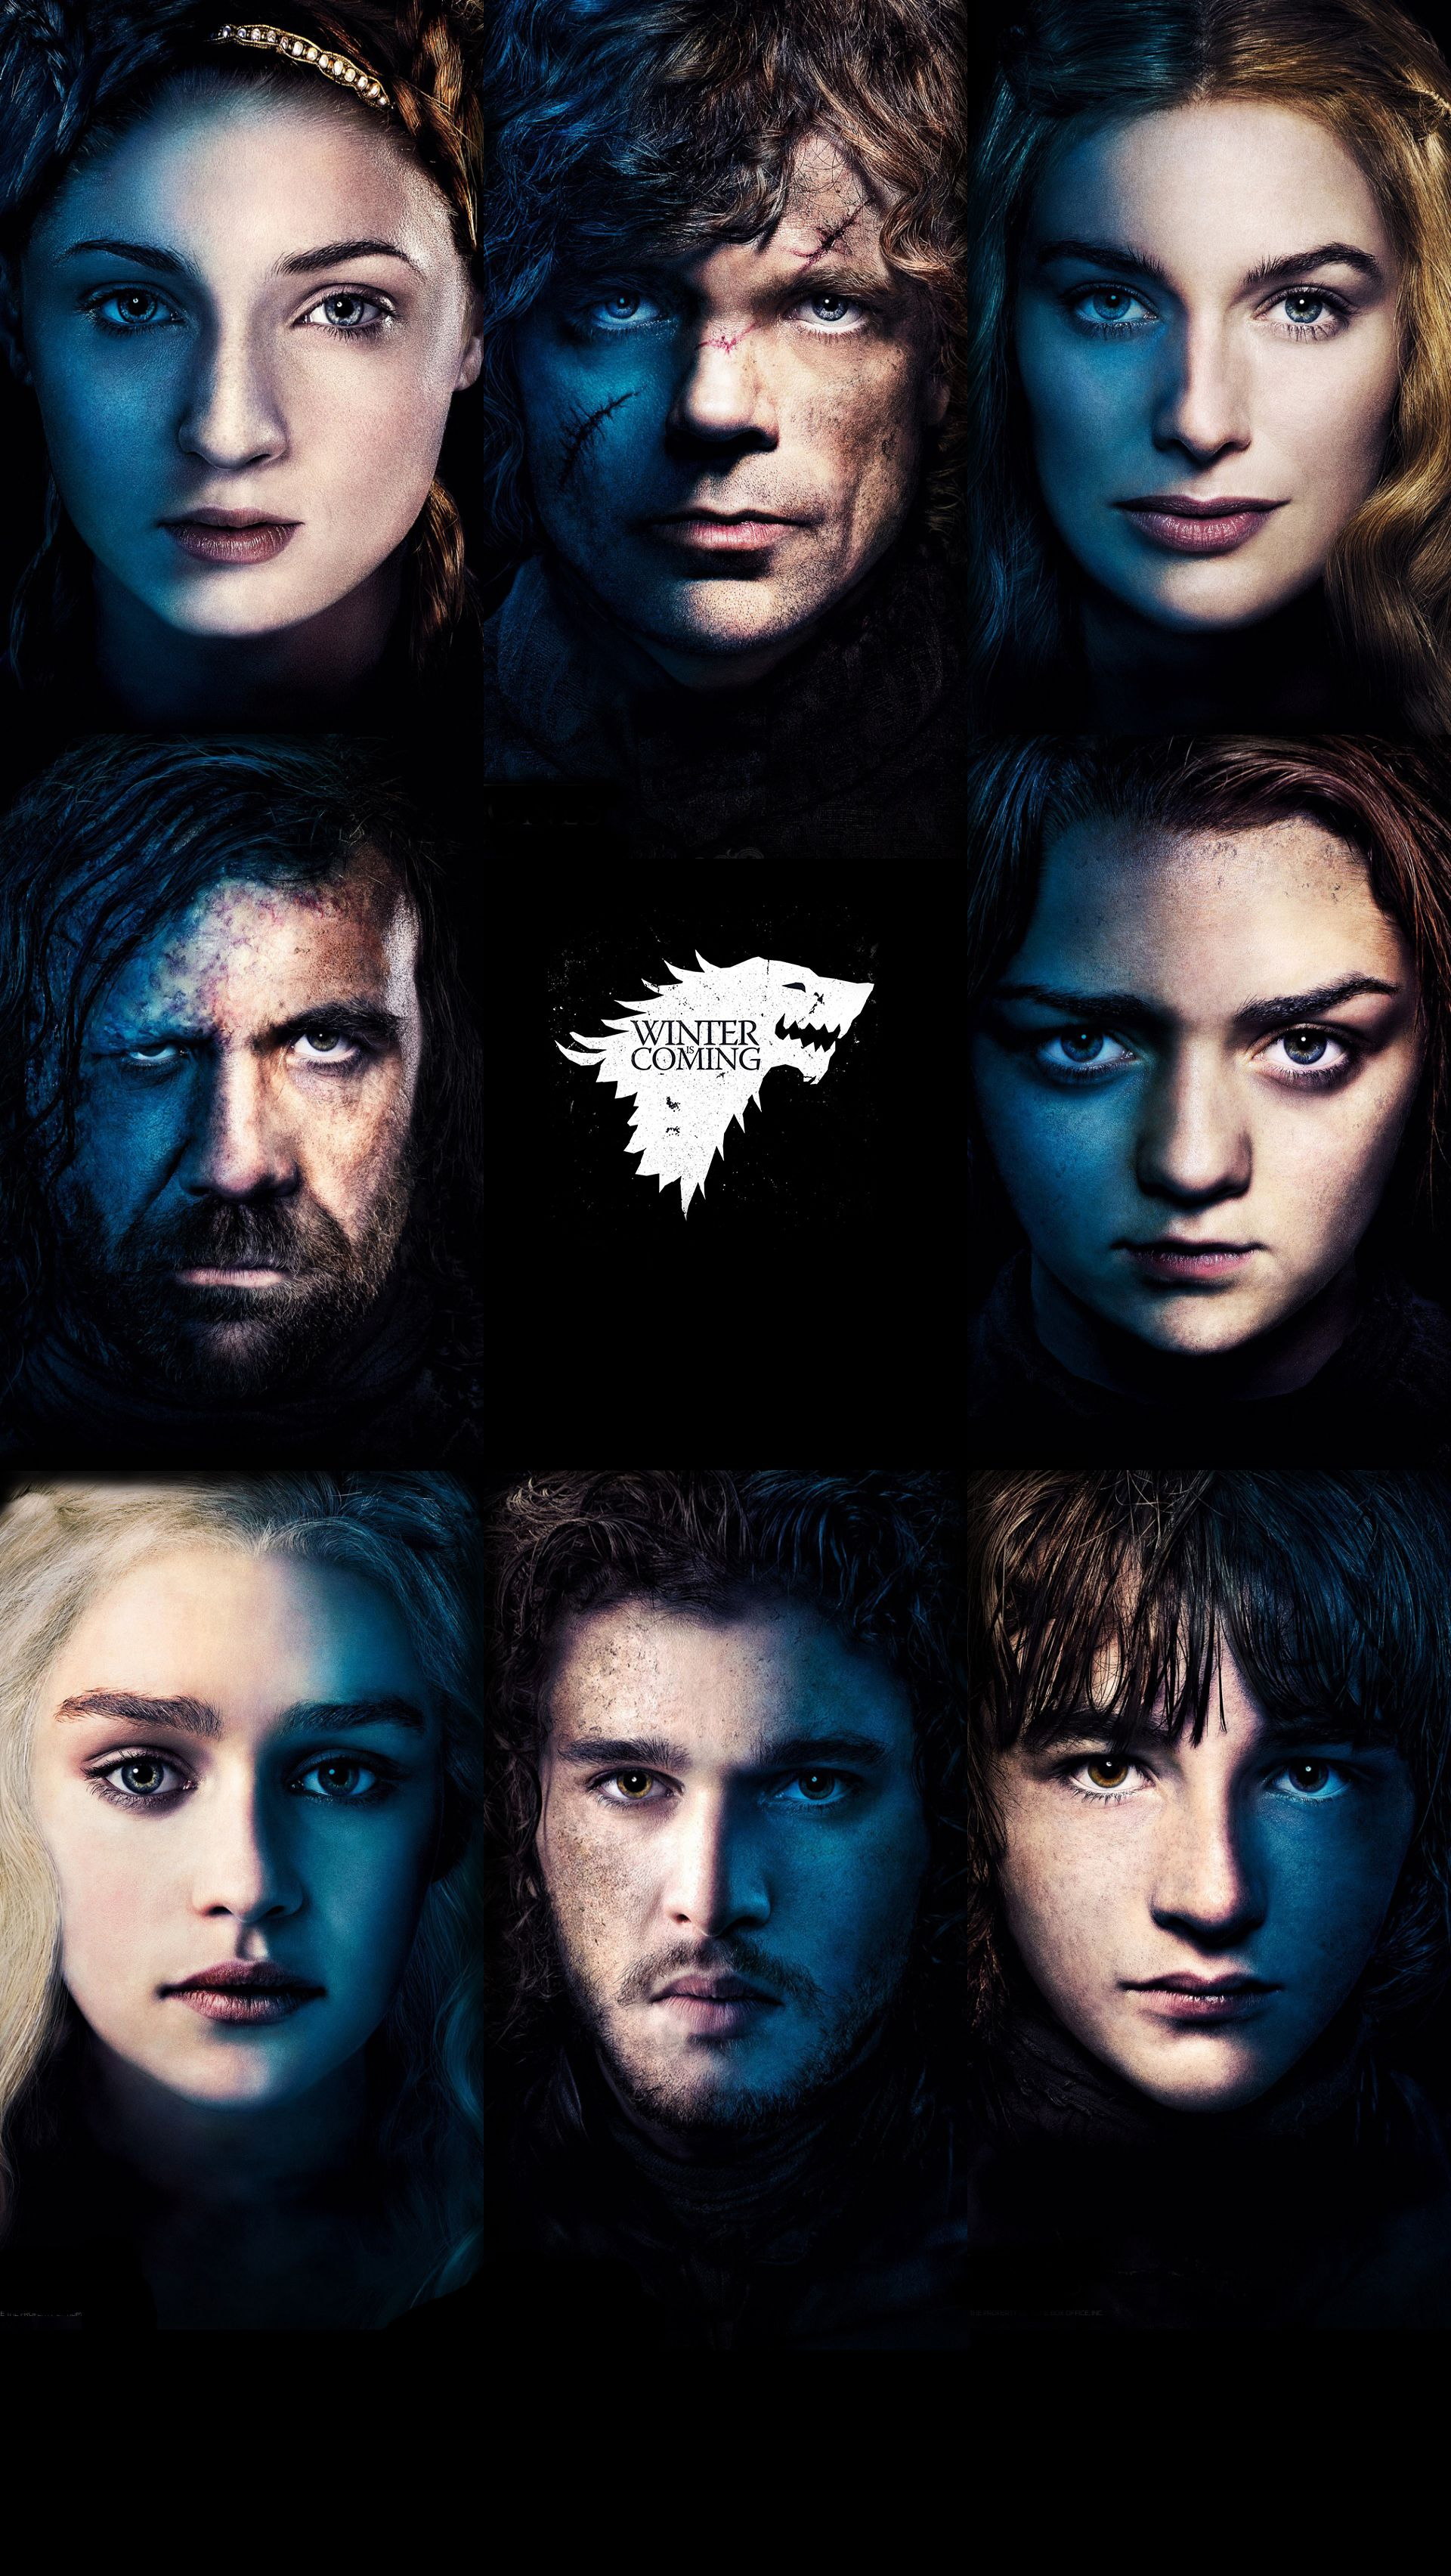 Game Of Thrones Iphone 5 5s 5c Wallpaper Wolf Stark Sansa Jon